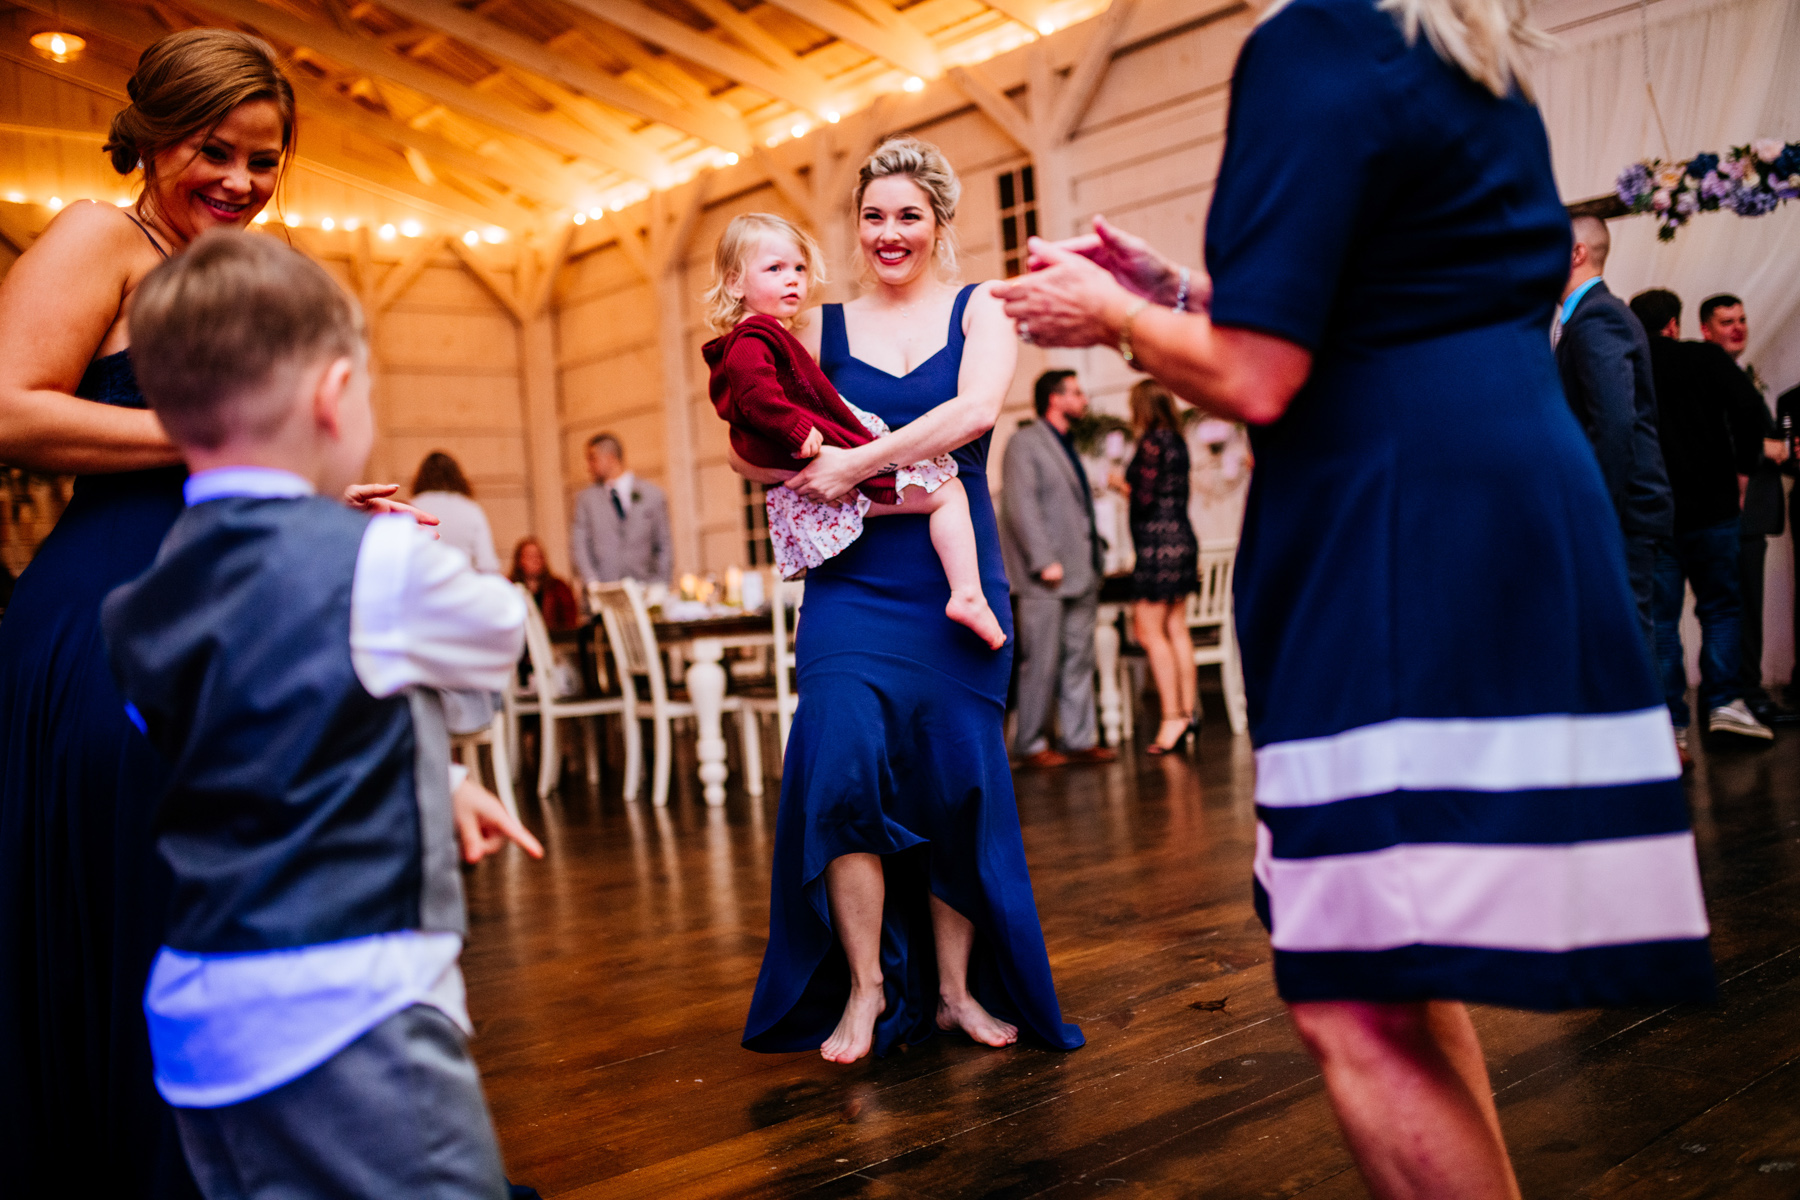 woman dances with child during wedding reception